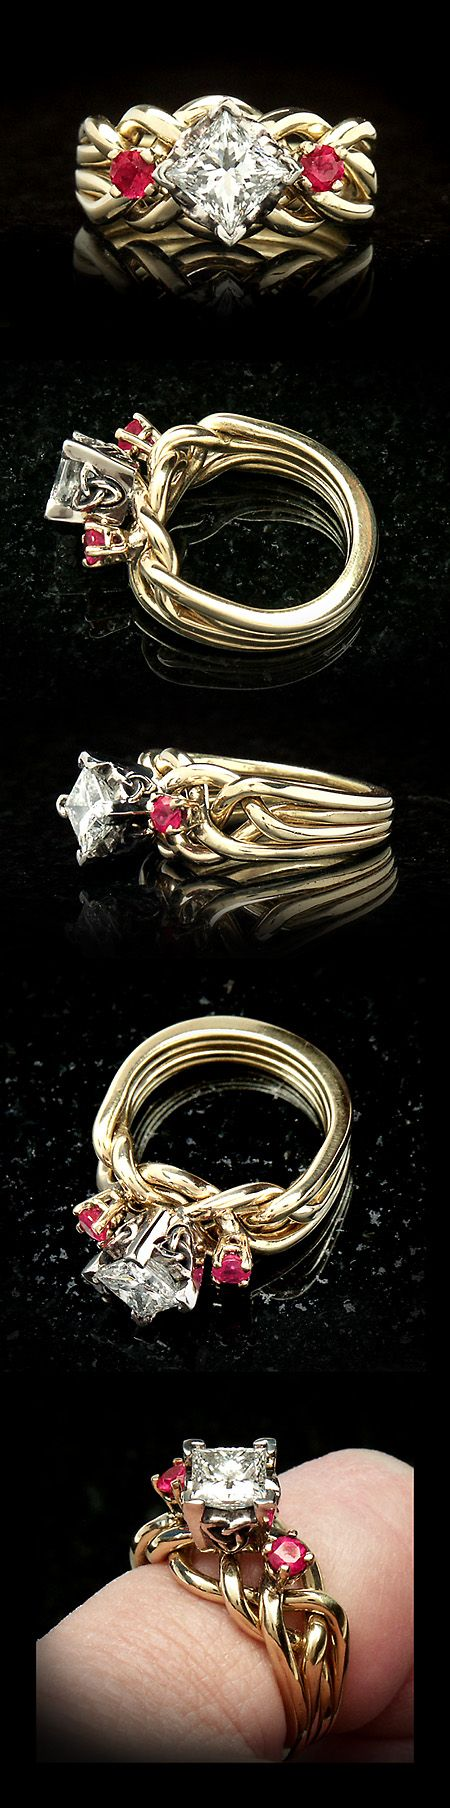 Juliet Royale Diamond Puzzle Ring With Rubies